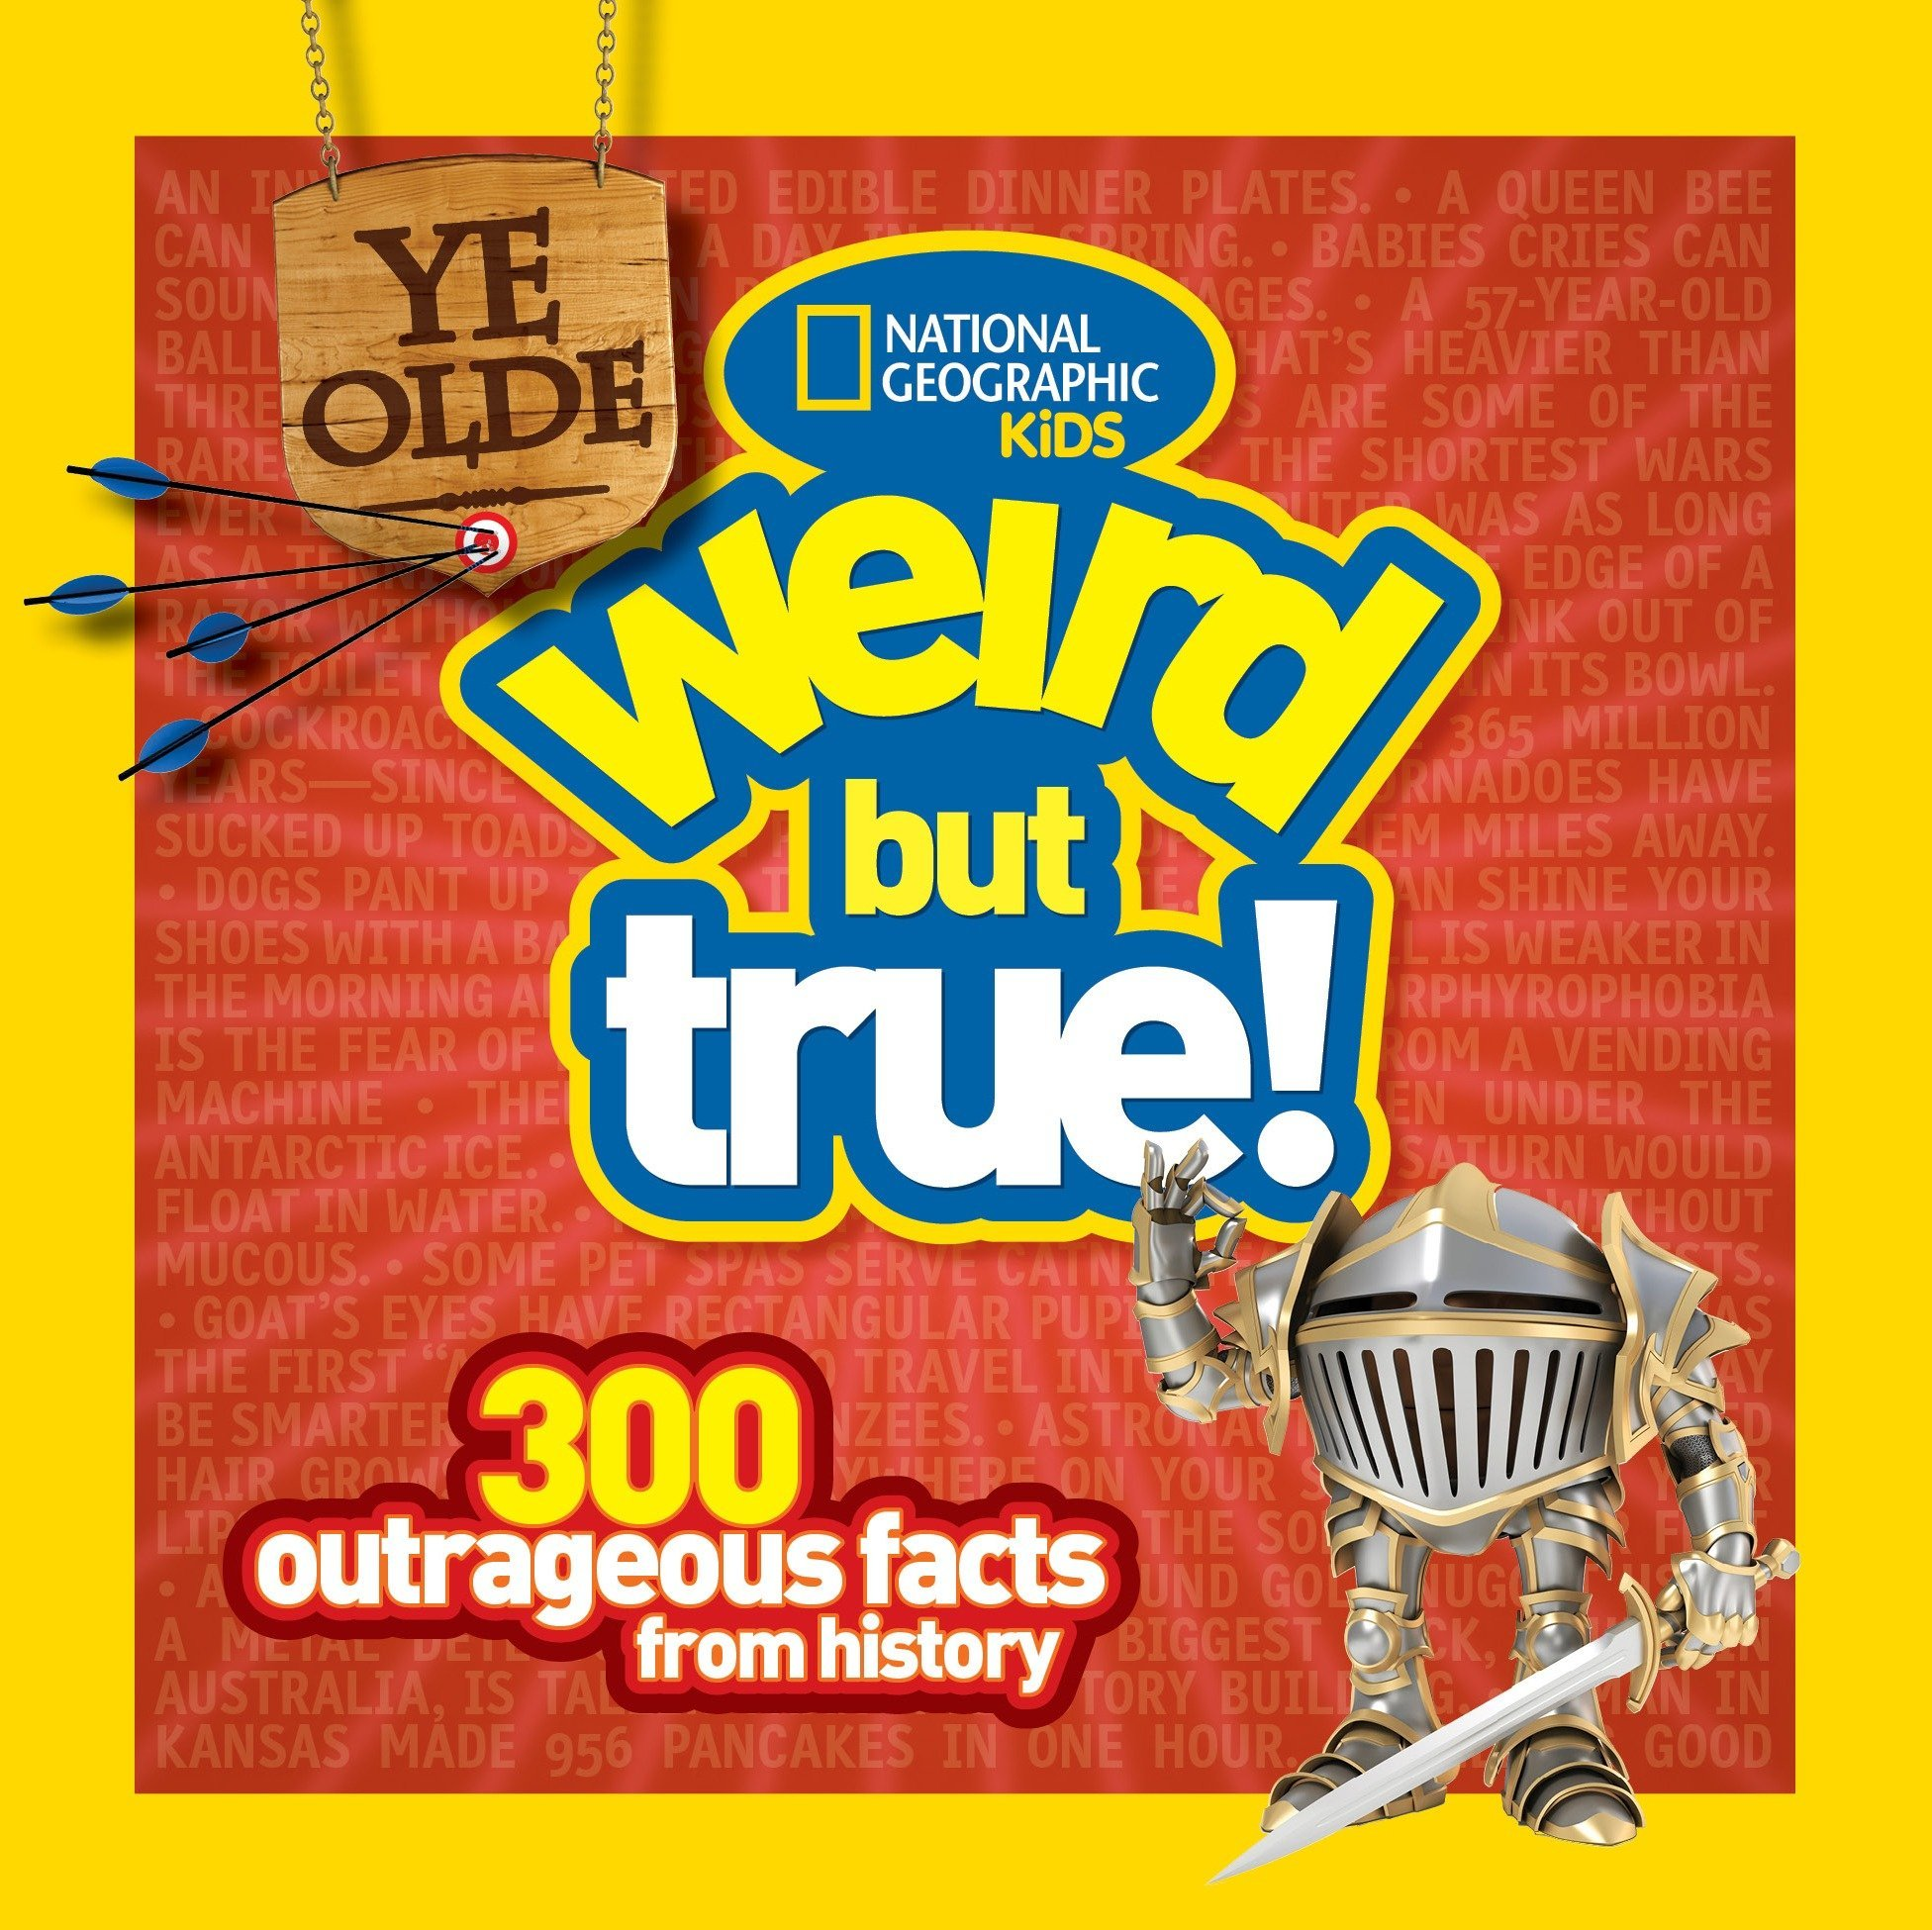 Ye Olde Weird But True: 300 Outrageous Facts from History by Brand: National Geographic Children's Books (Image #1)